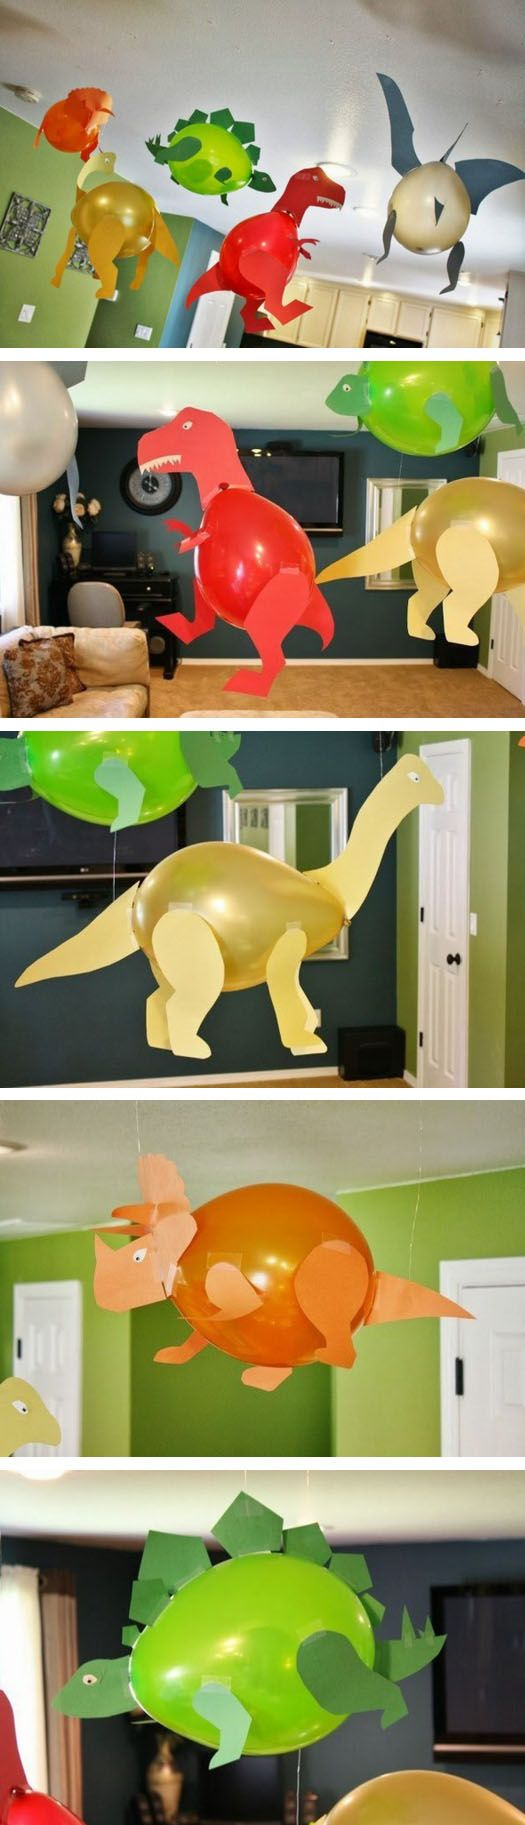 Ballons ang paper is all you need to make home decor for kids party #art…